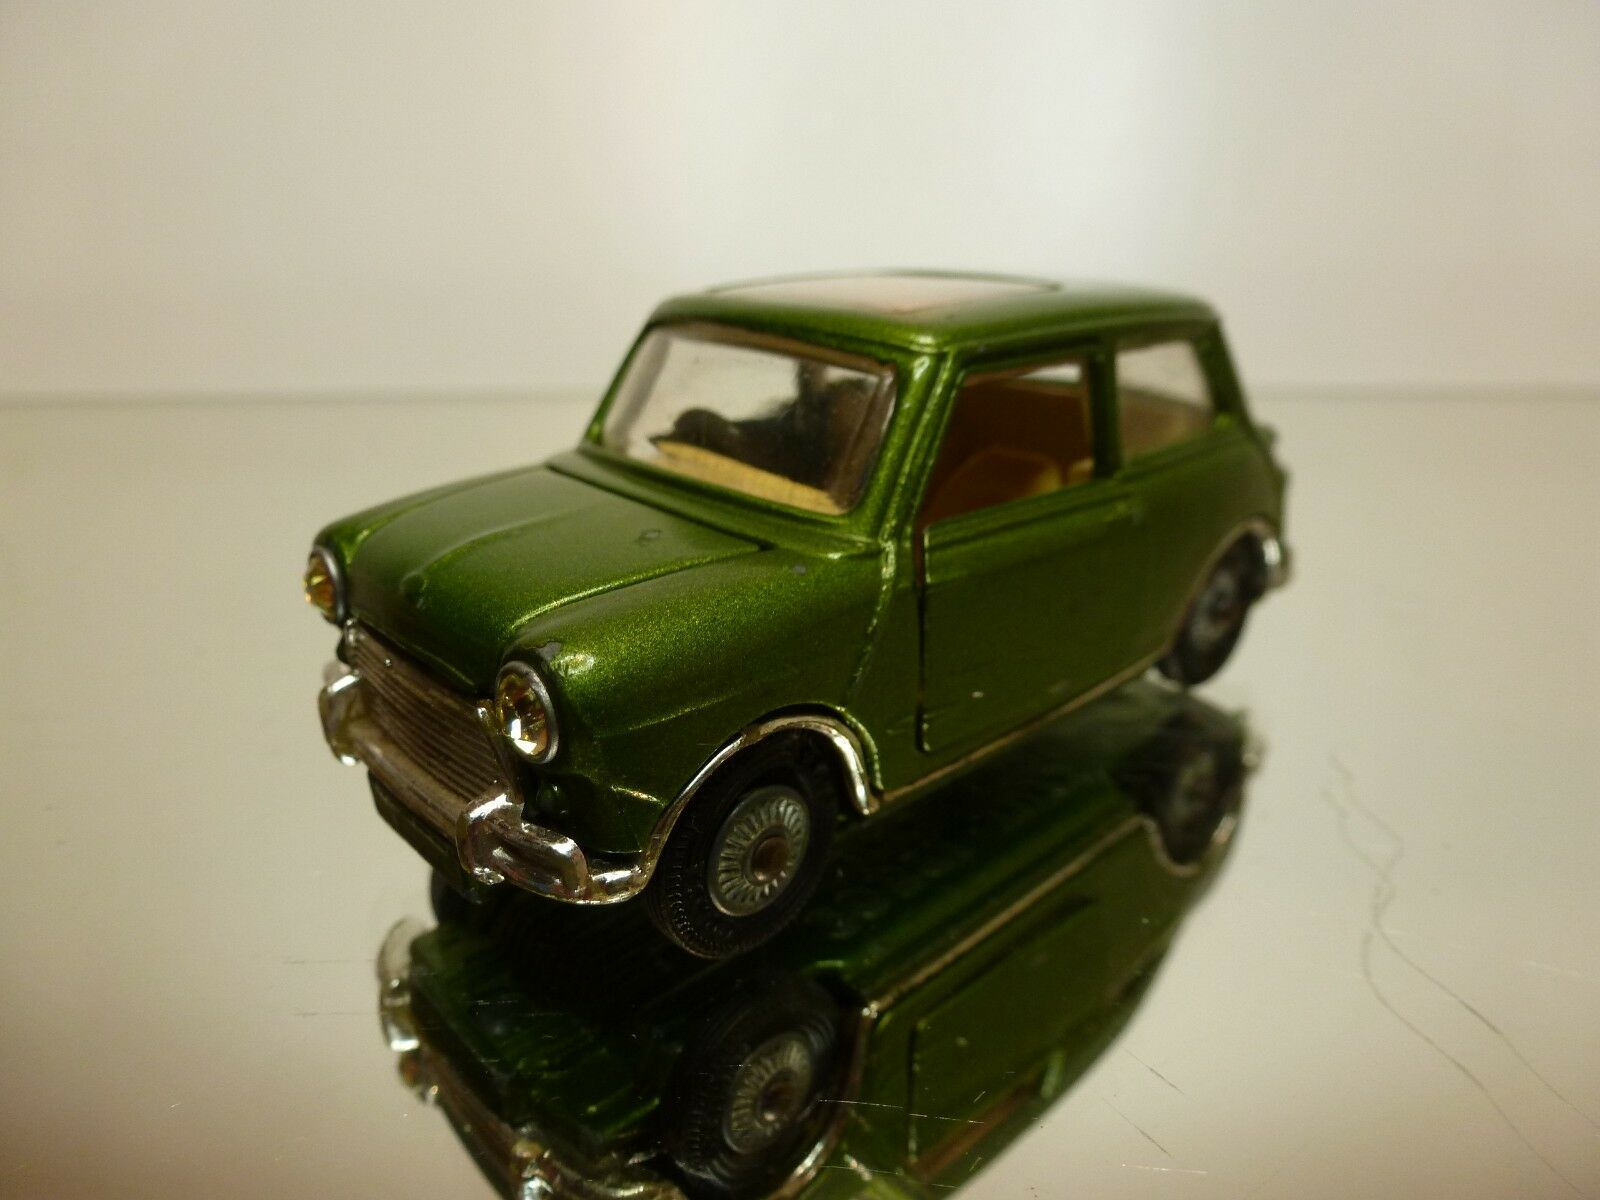 CORGI TOYS 334 BMC MINI COOPER S - SUNROOF- vert  METALLIC 1 43 - GOOD CONDITION  soutenir le commerce de gros